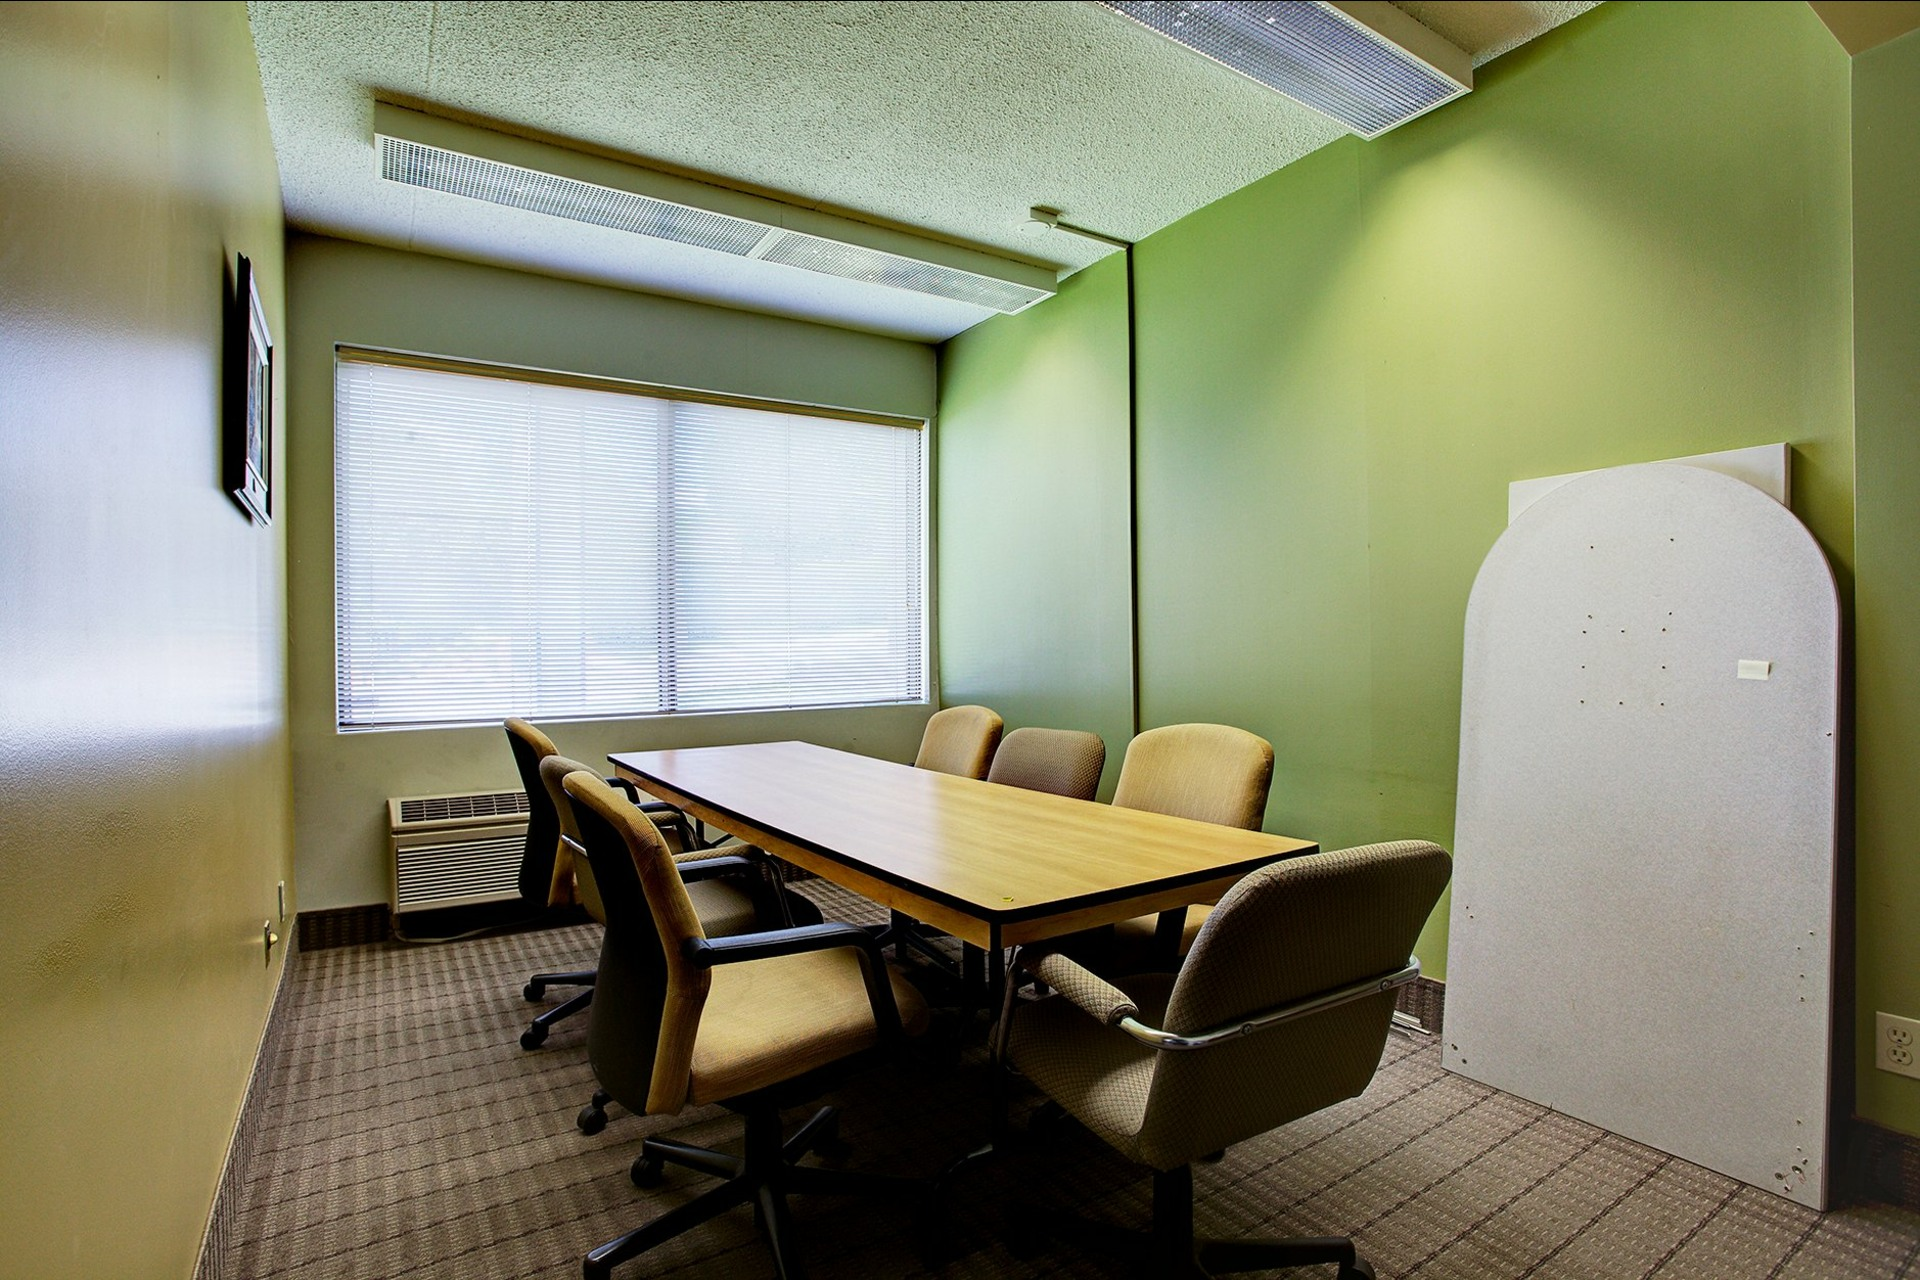 image 5 - Office For rent Rigaud